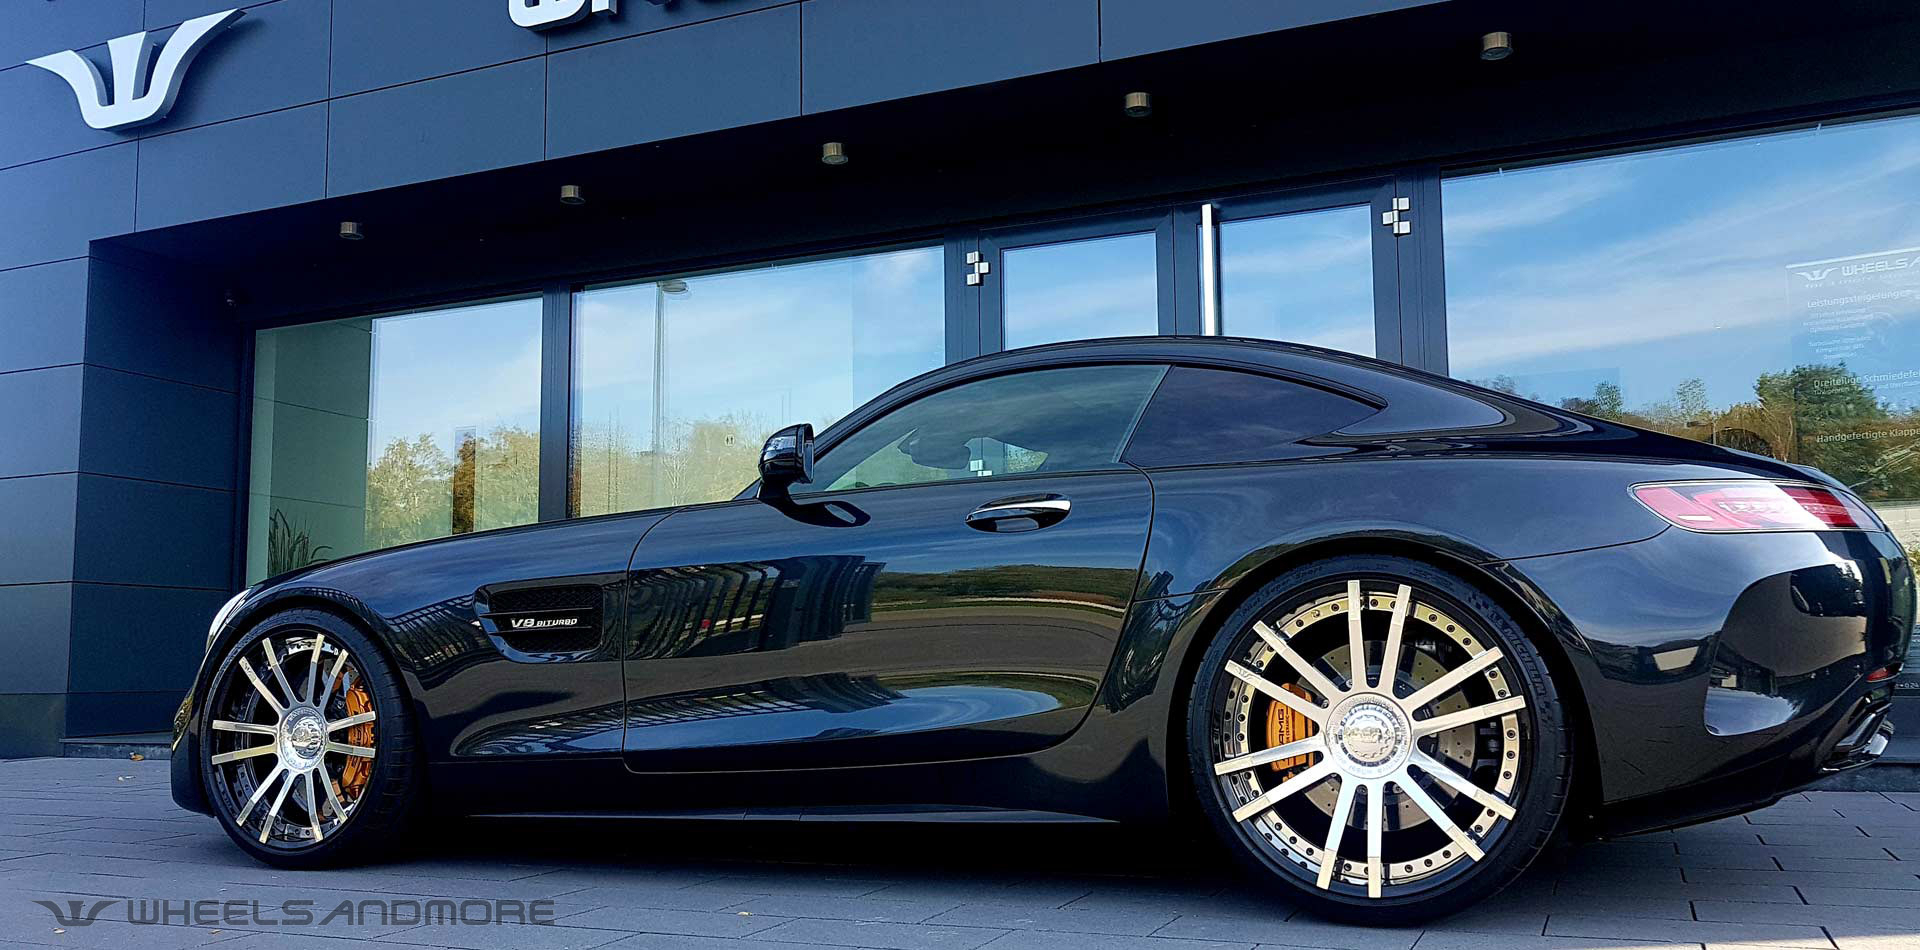 amg gtc tuning wheelsandmore seite